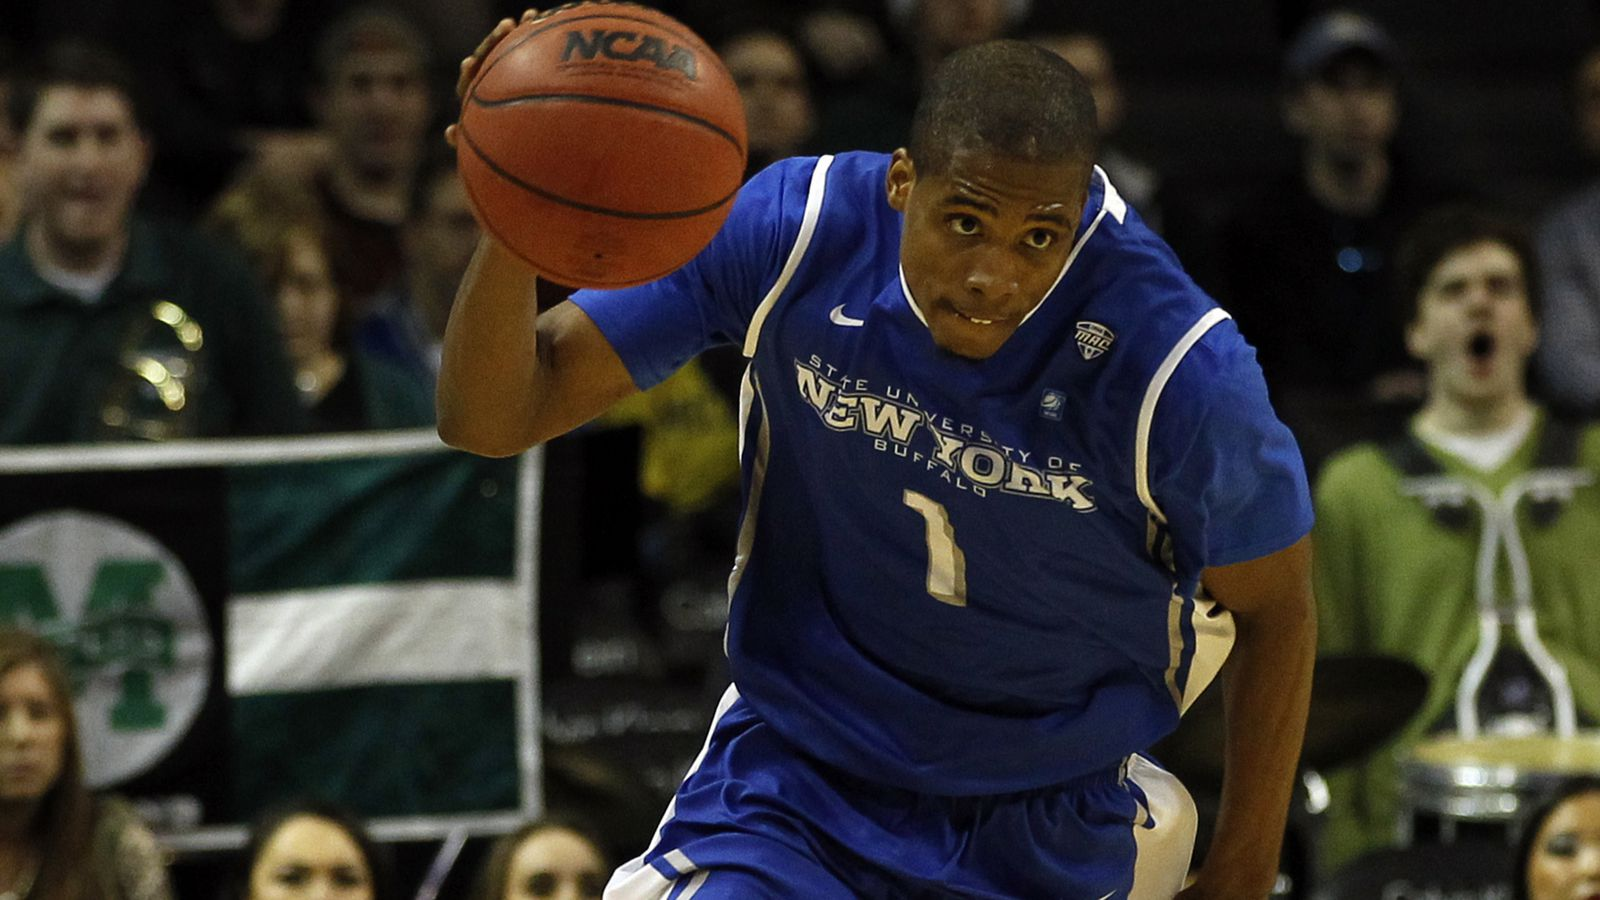 NCAA Basketball - Buffalo Bulls vs Northern Illinois Huskies - Bull Run